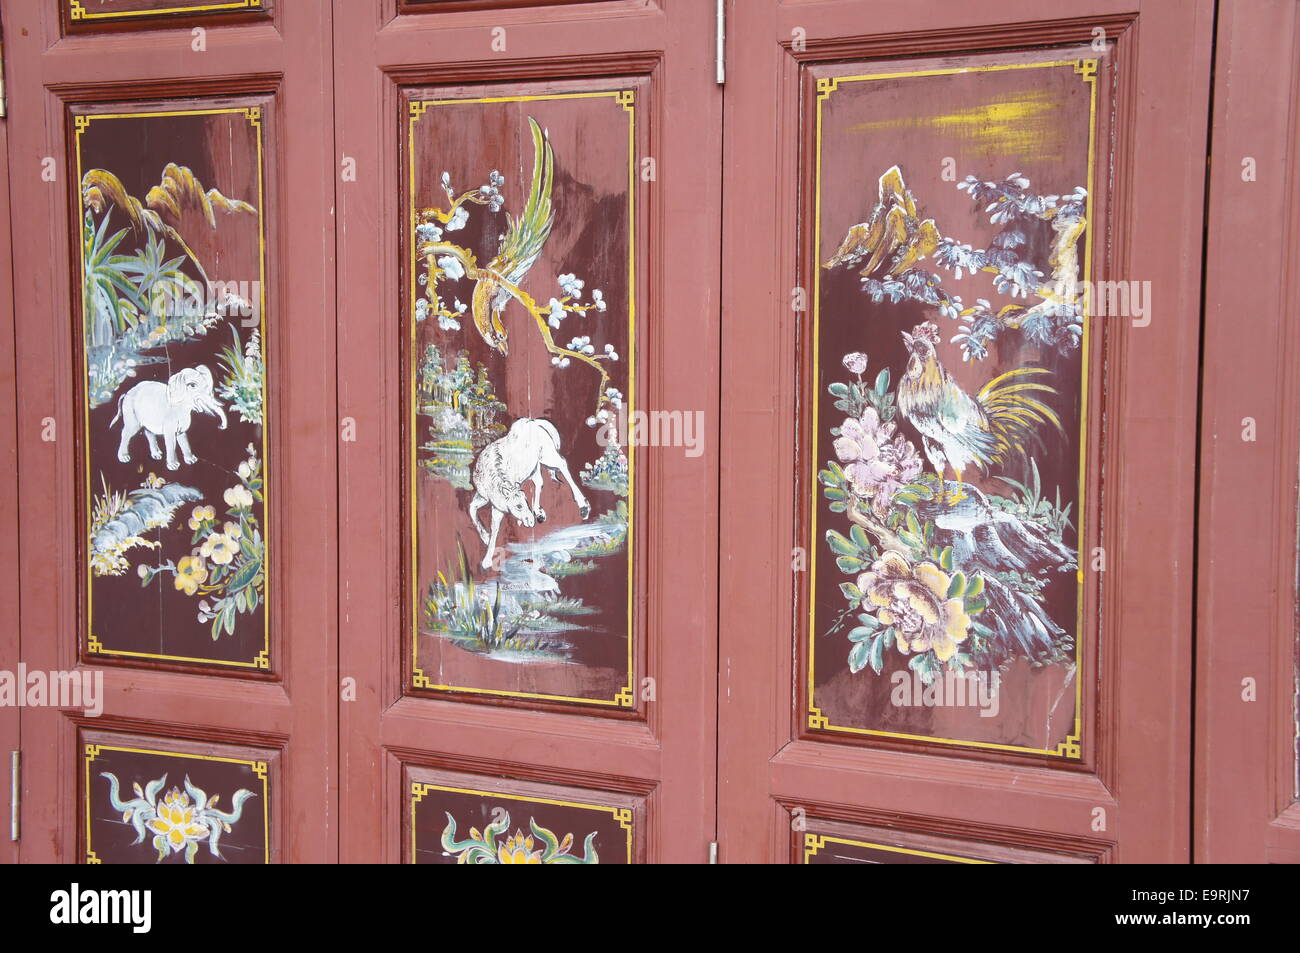 Chinese traditional art painted on door of temple - Stock Image